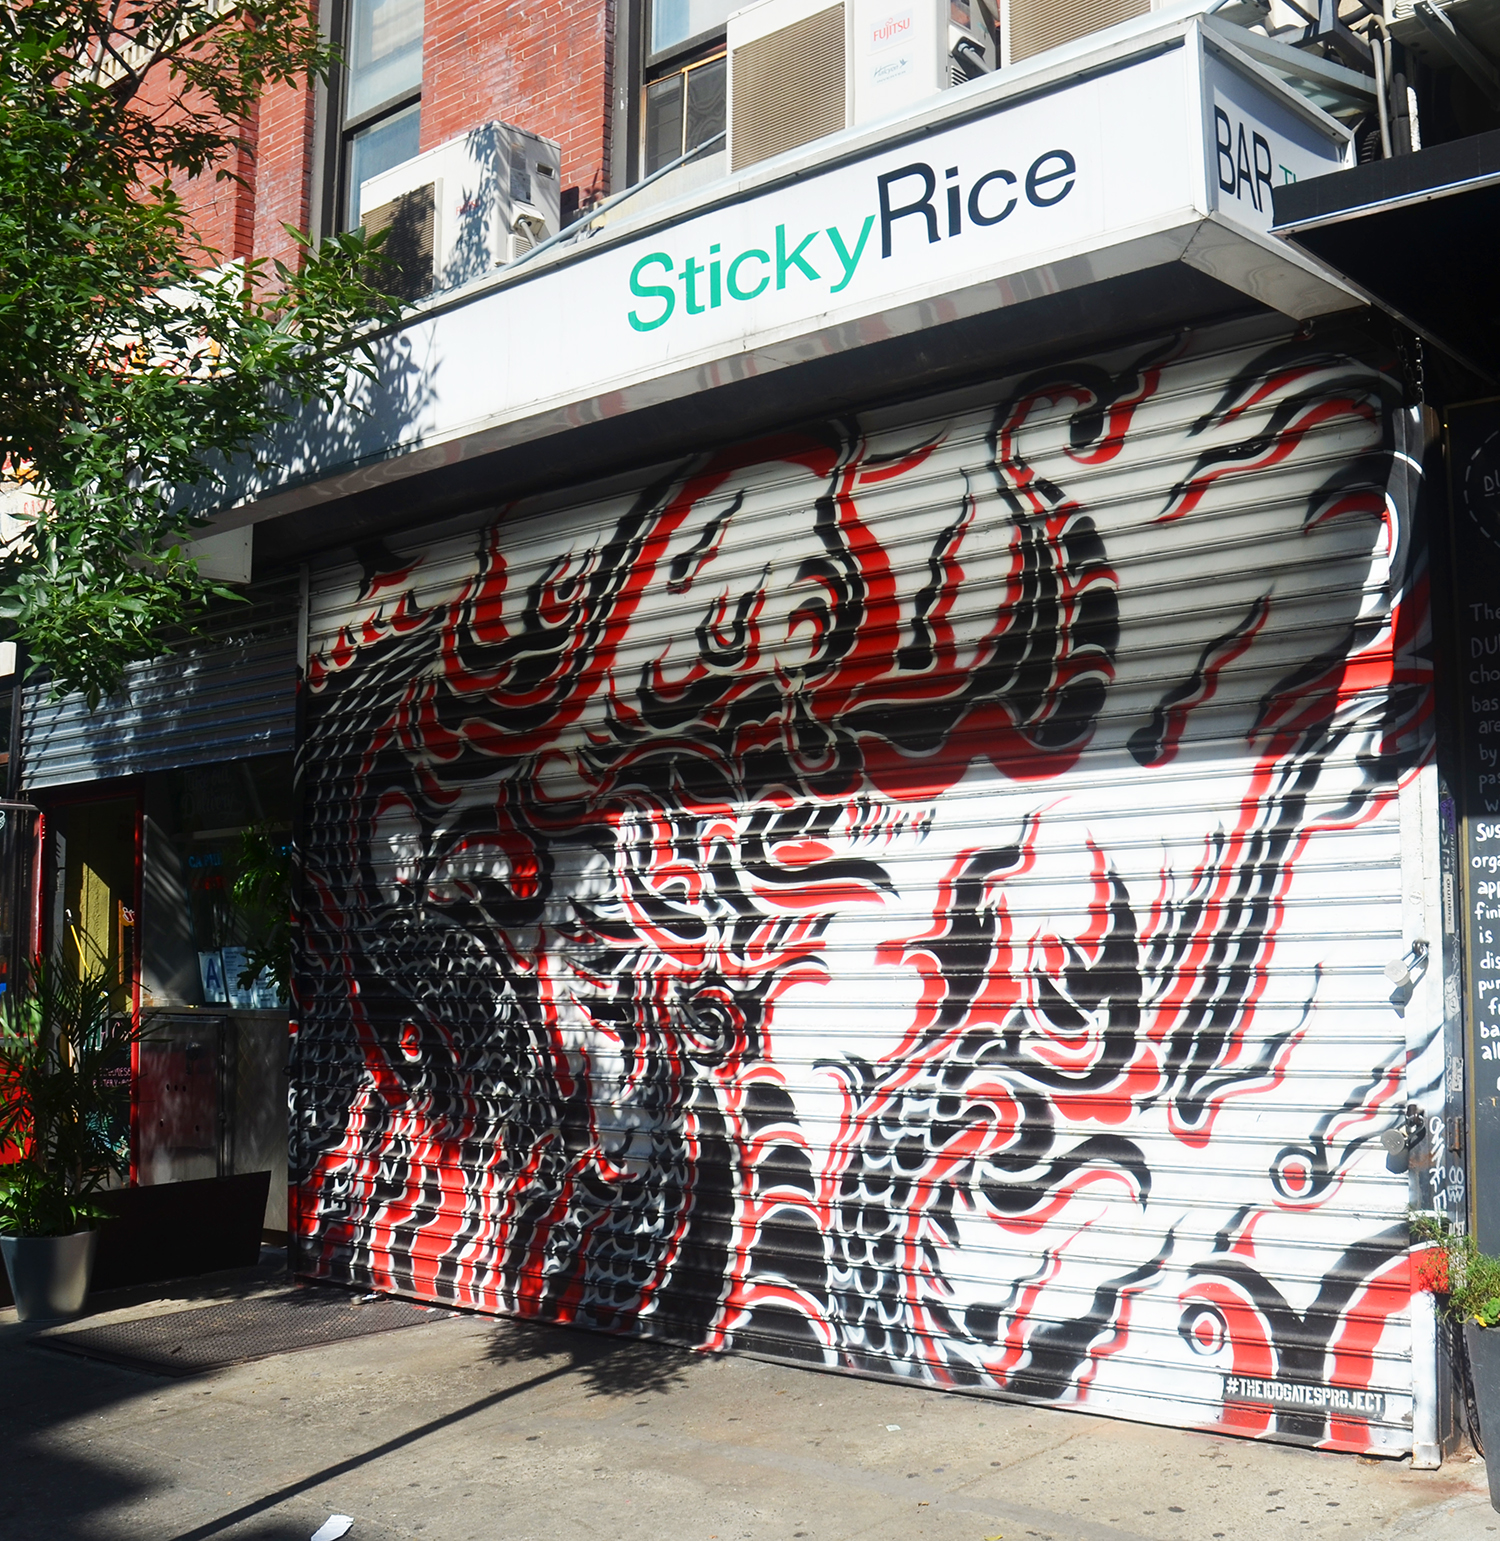 100 Gates - Sticky Rice at 85 Orchard Street by Jack Aguirre